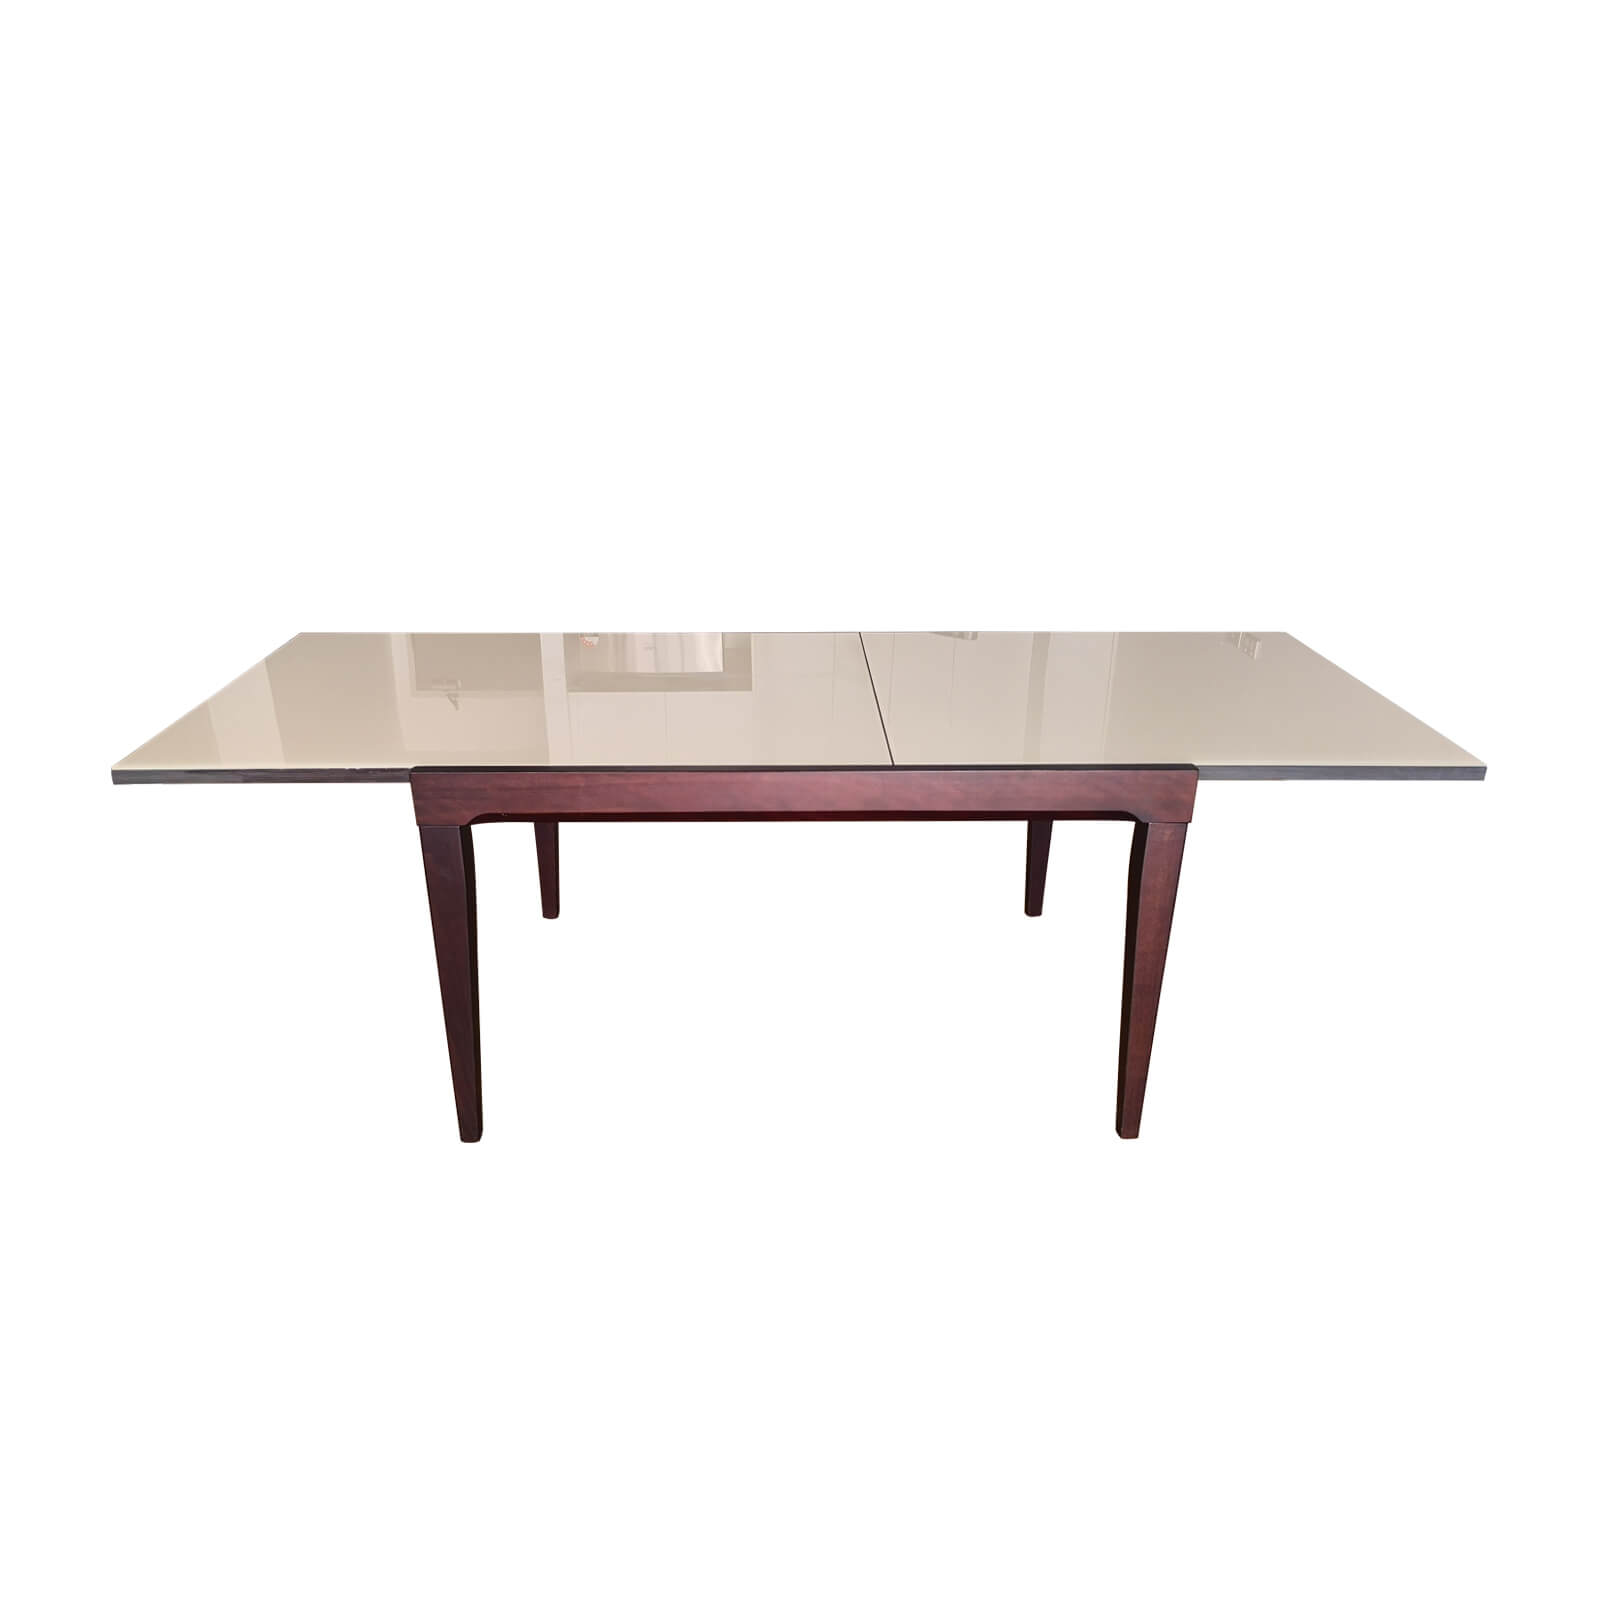 Two Design Lovers Italian 5 piece dining set table extended